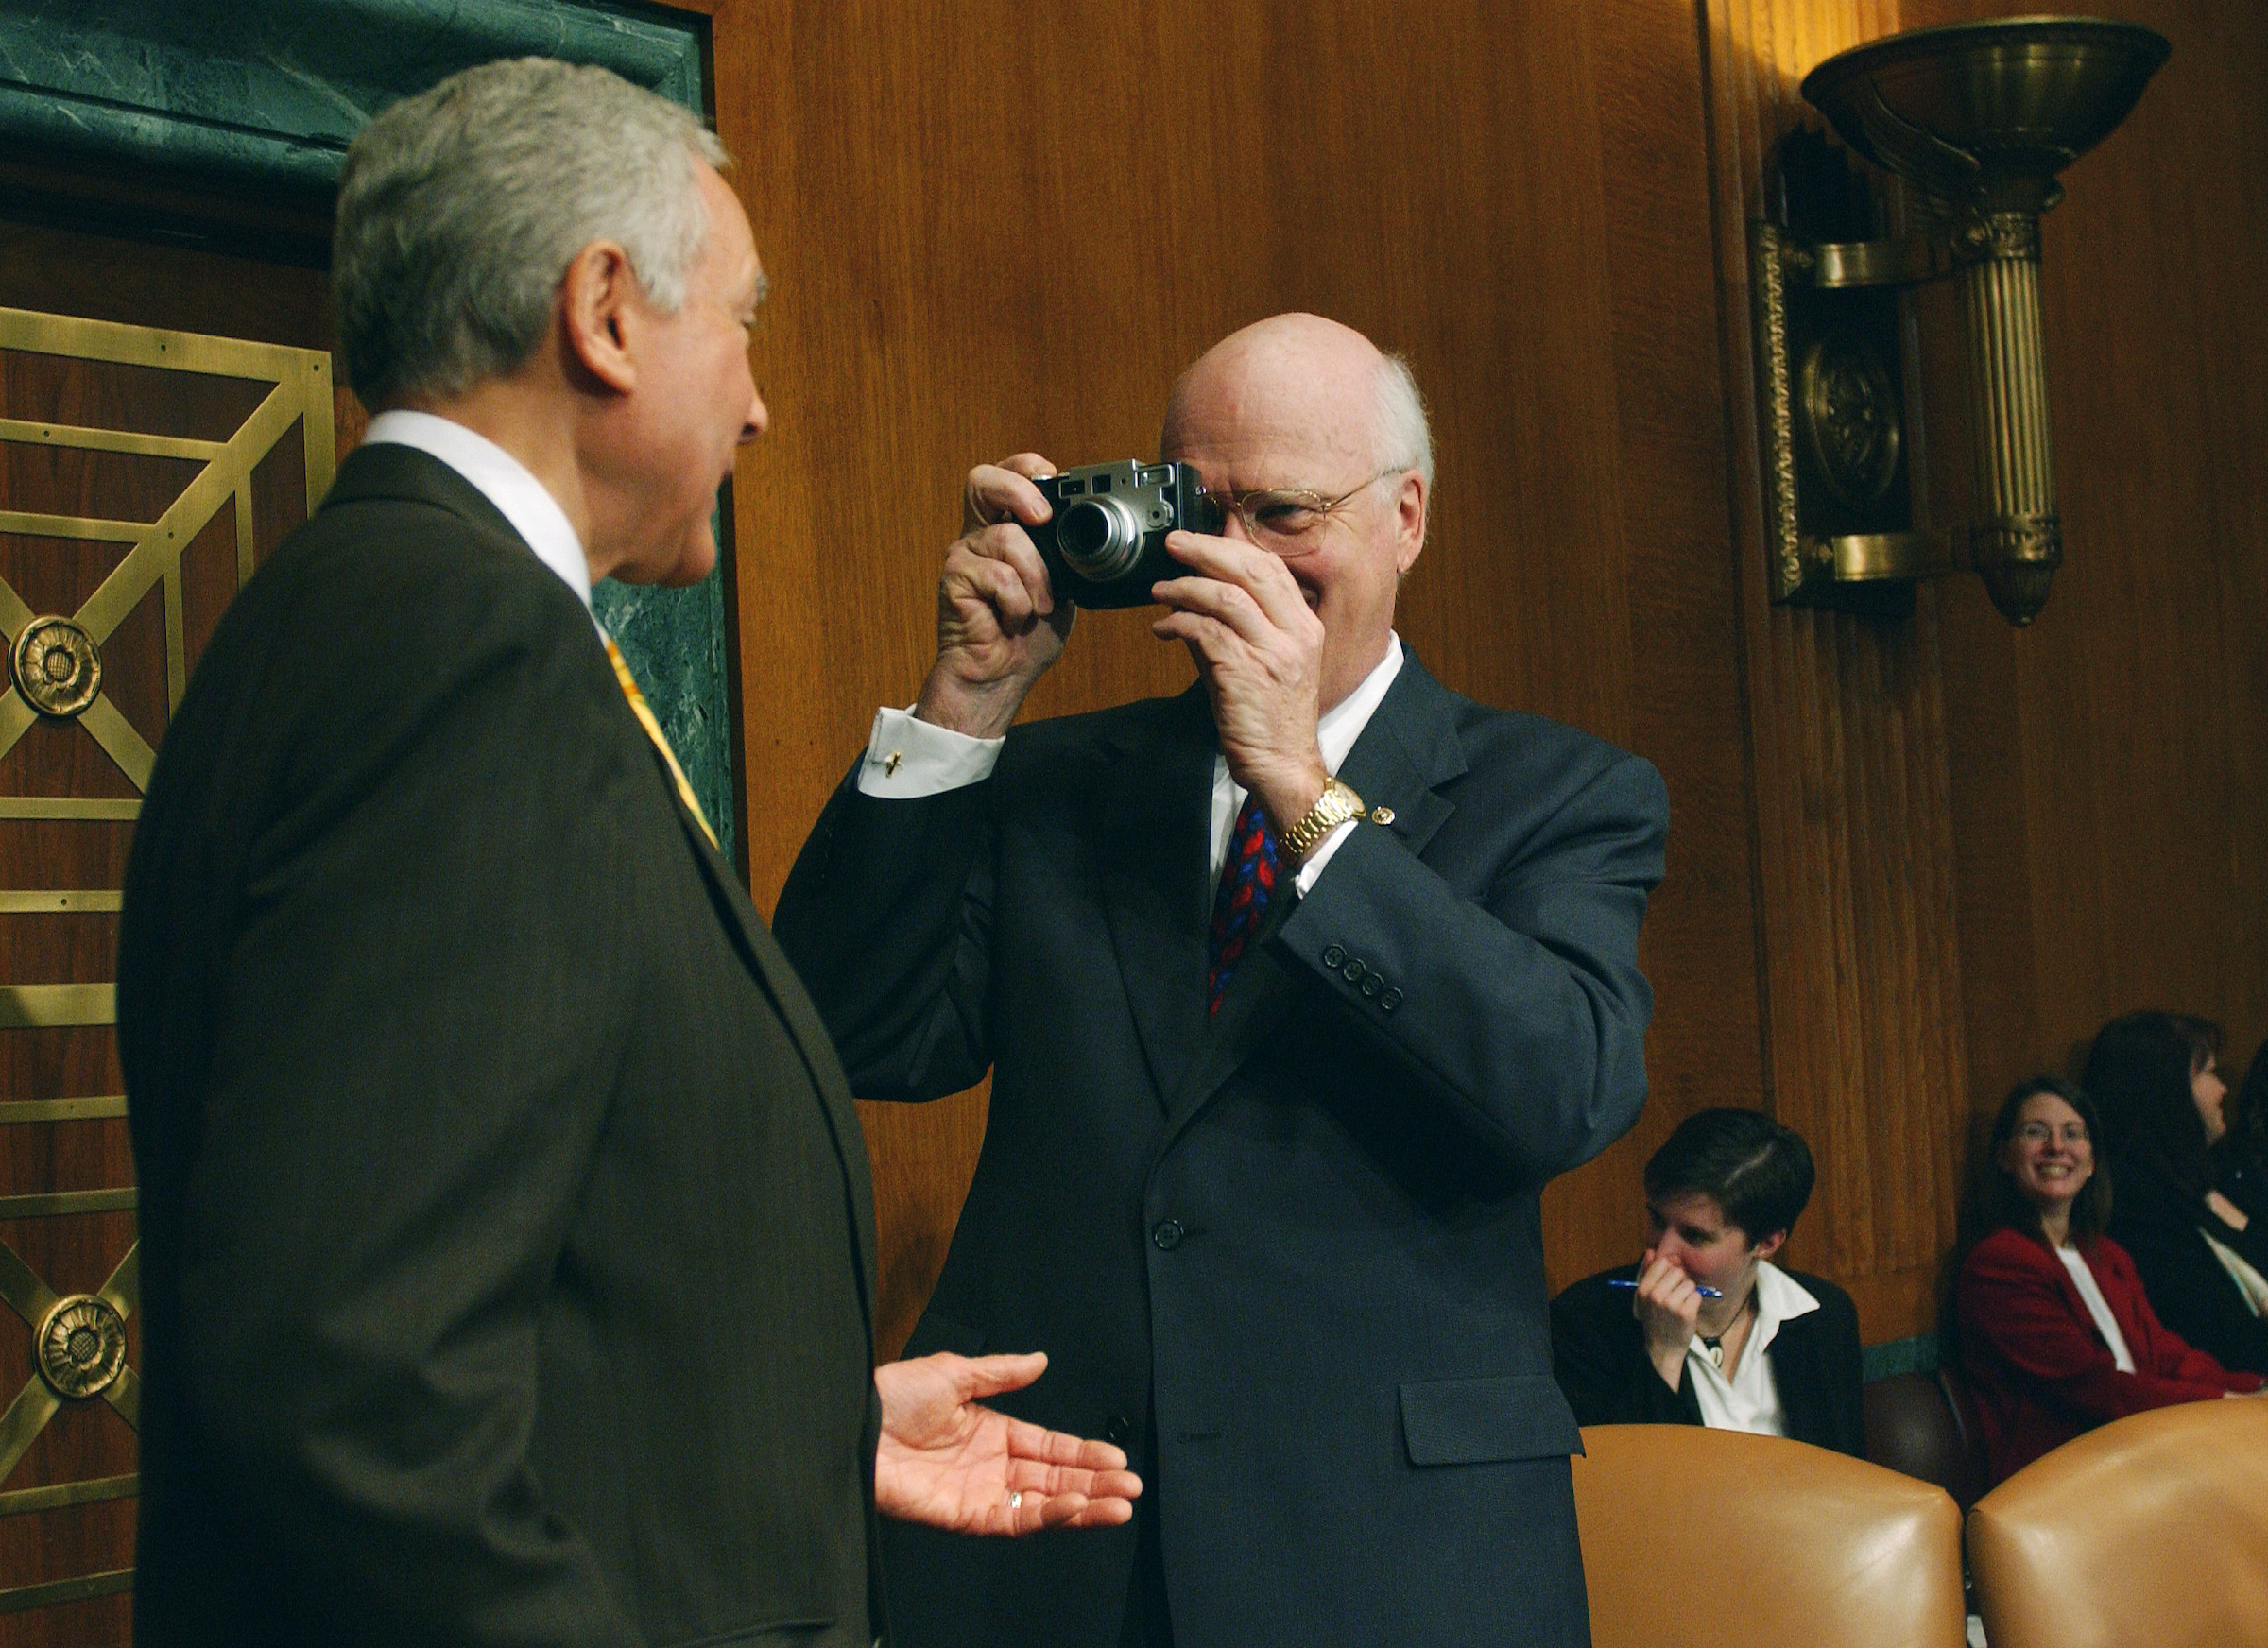 Smile! Then-Senate Judiciary Chairman Patrick J. Leahy snaps a picture of Hatch in 2002 with a digital camera he asked to see from a news photographer in the well. (Scott J. Ferrell/Congressional Quarterly)